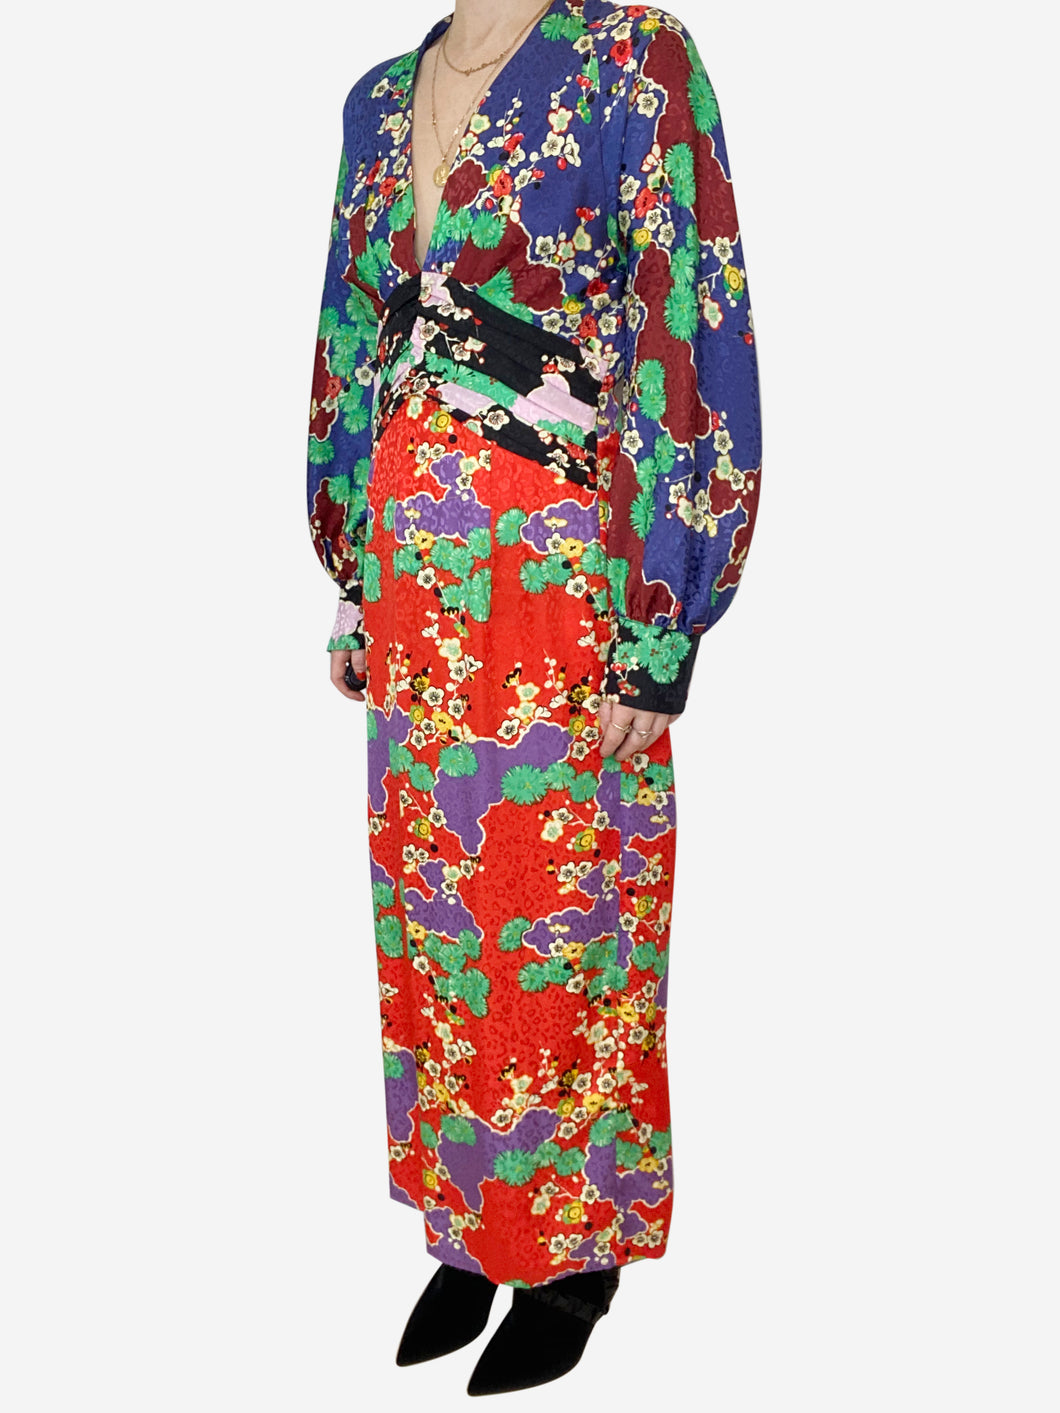 Fedora red, purple, green cherry blossom midi dress - size M